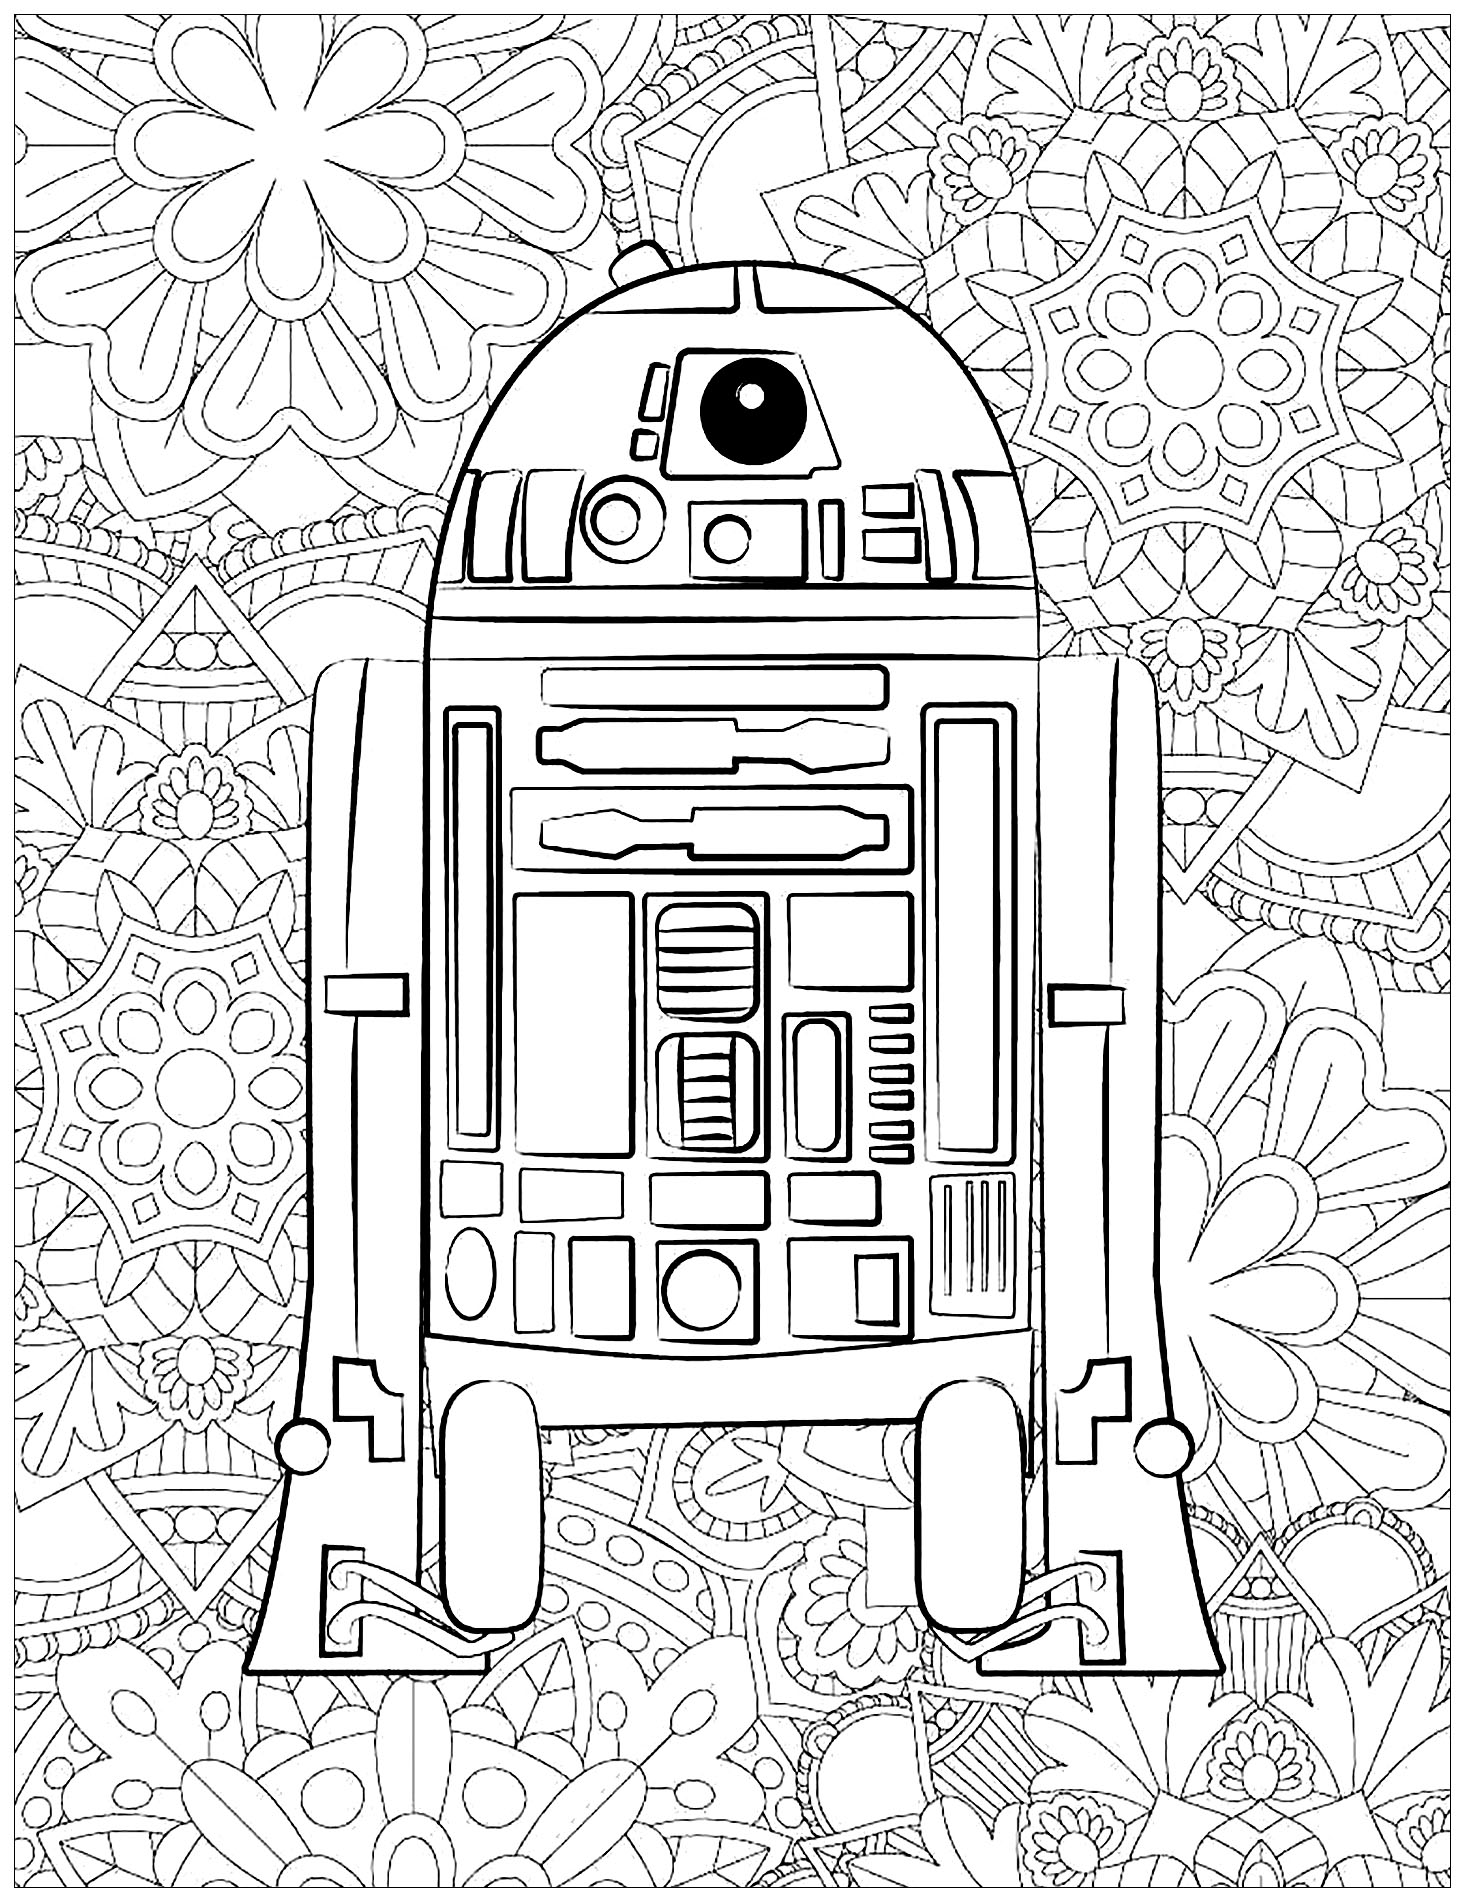 Star wars - Coloring Pages for Adults | 1902x1465